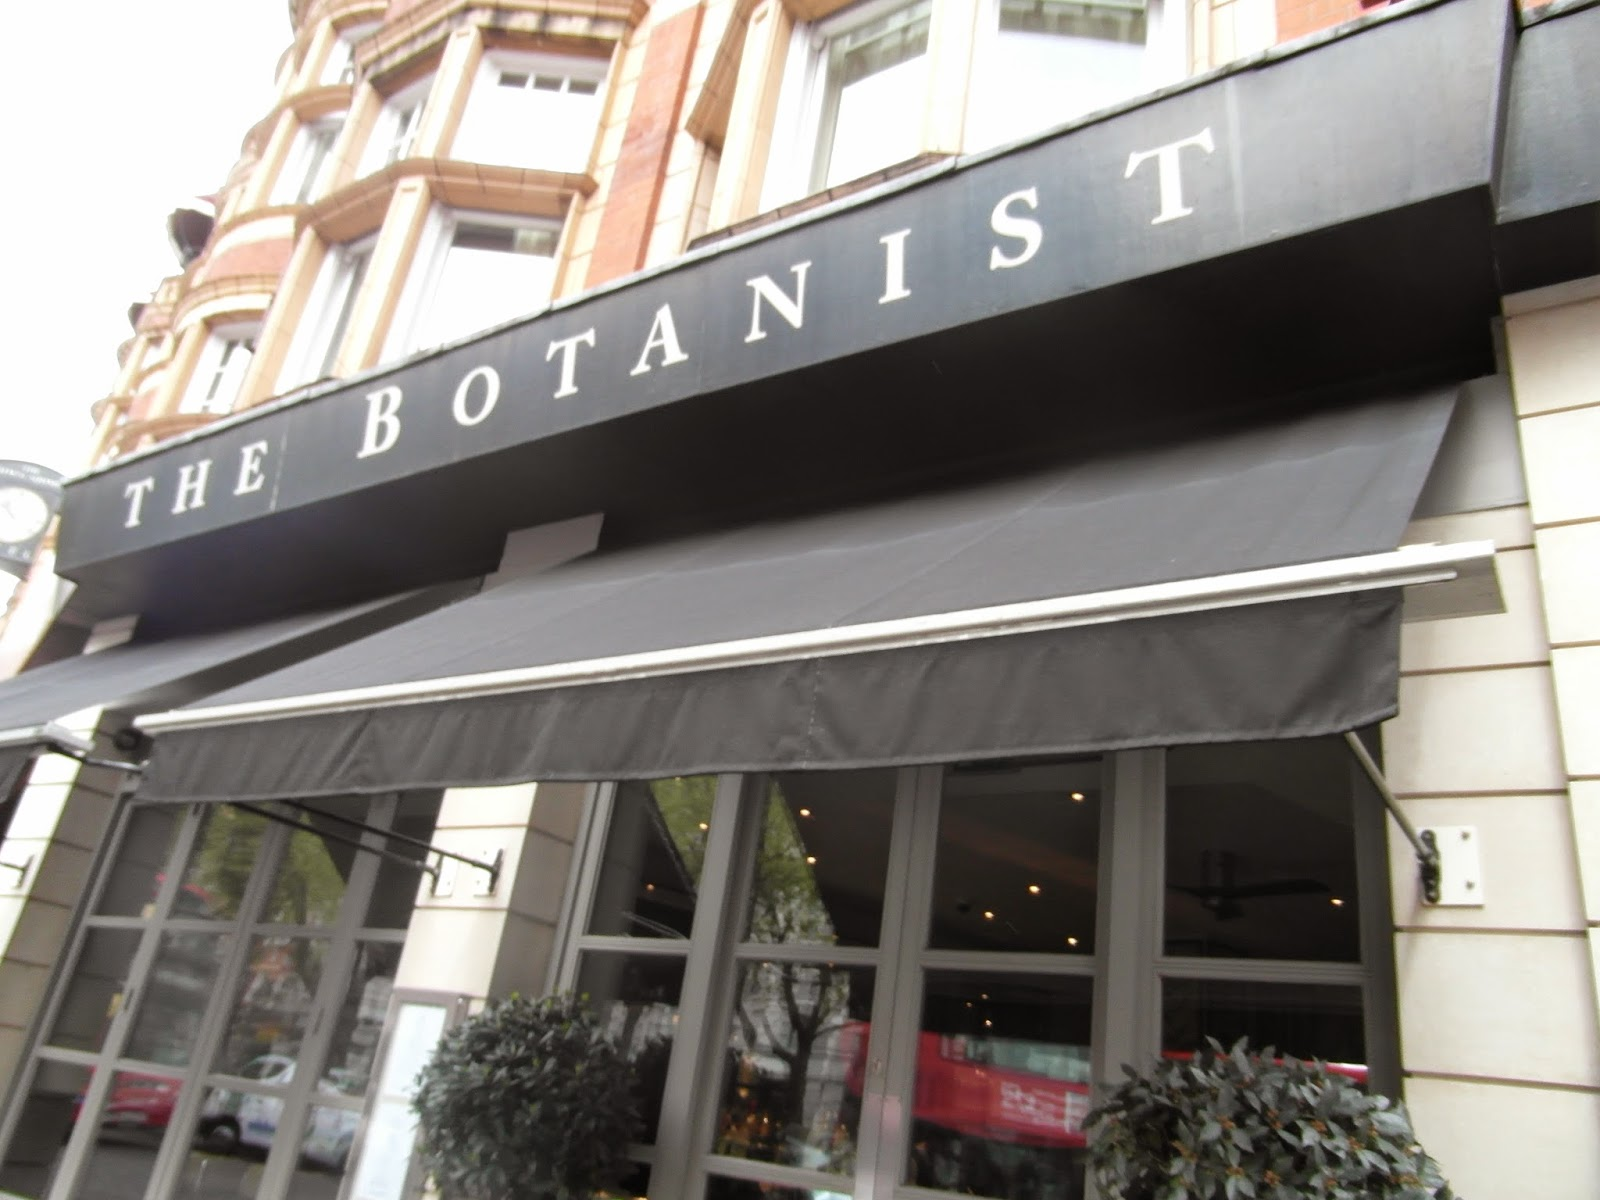 Breakfast The Botanist Sloane Square London